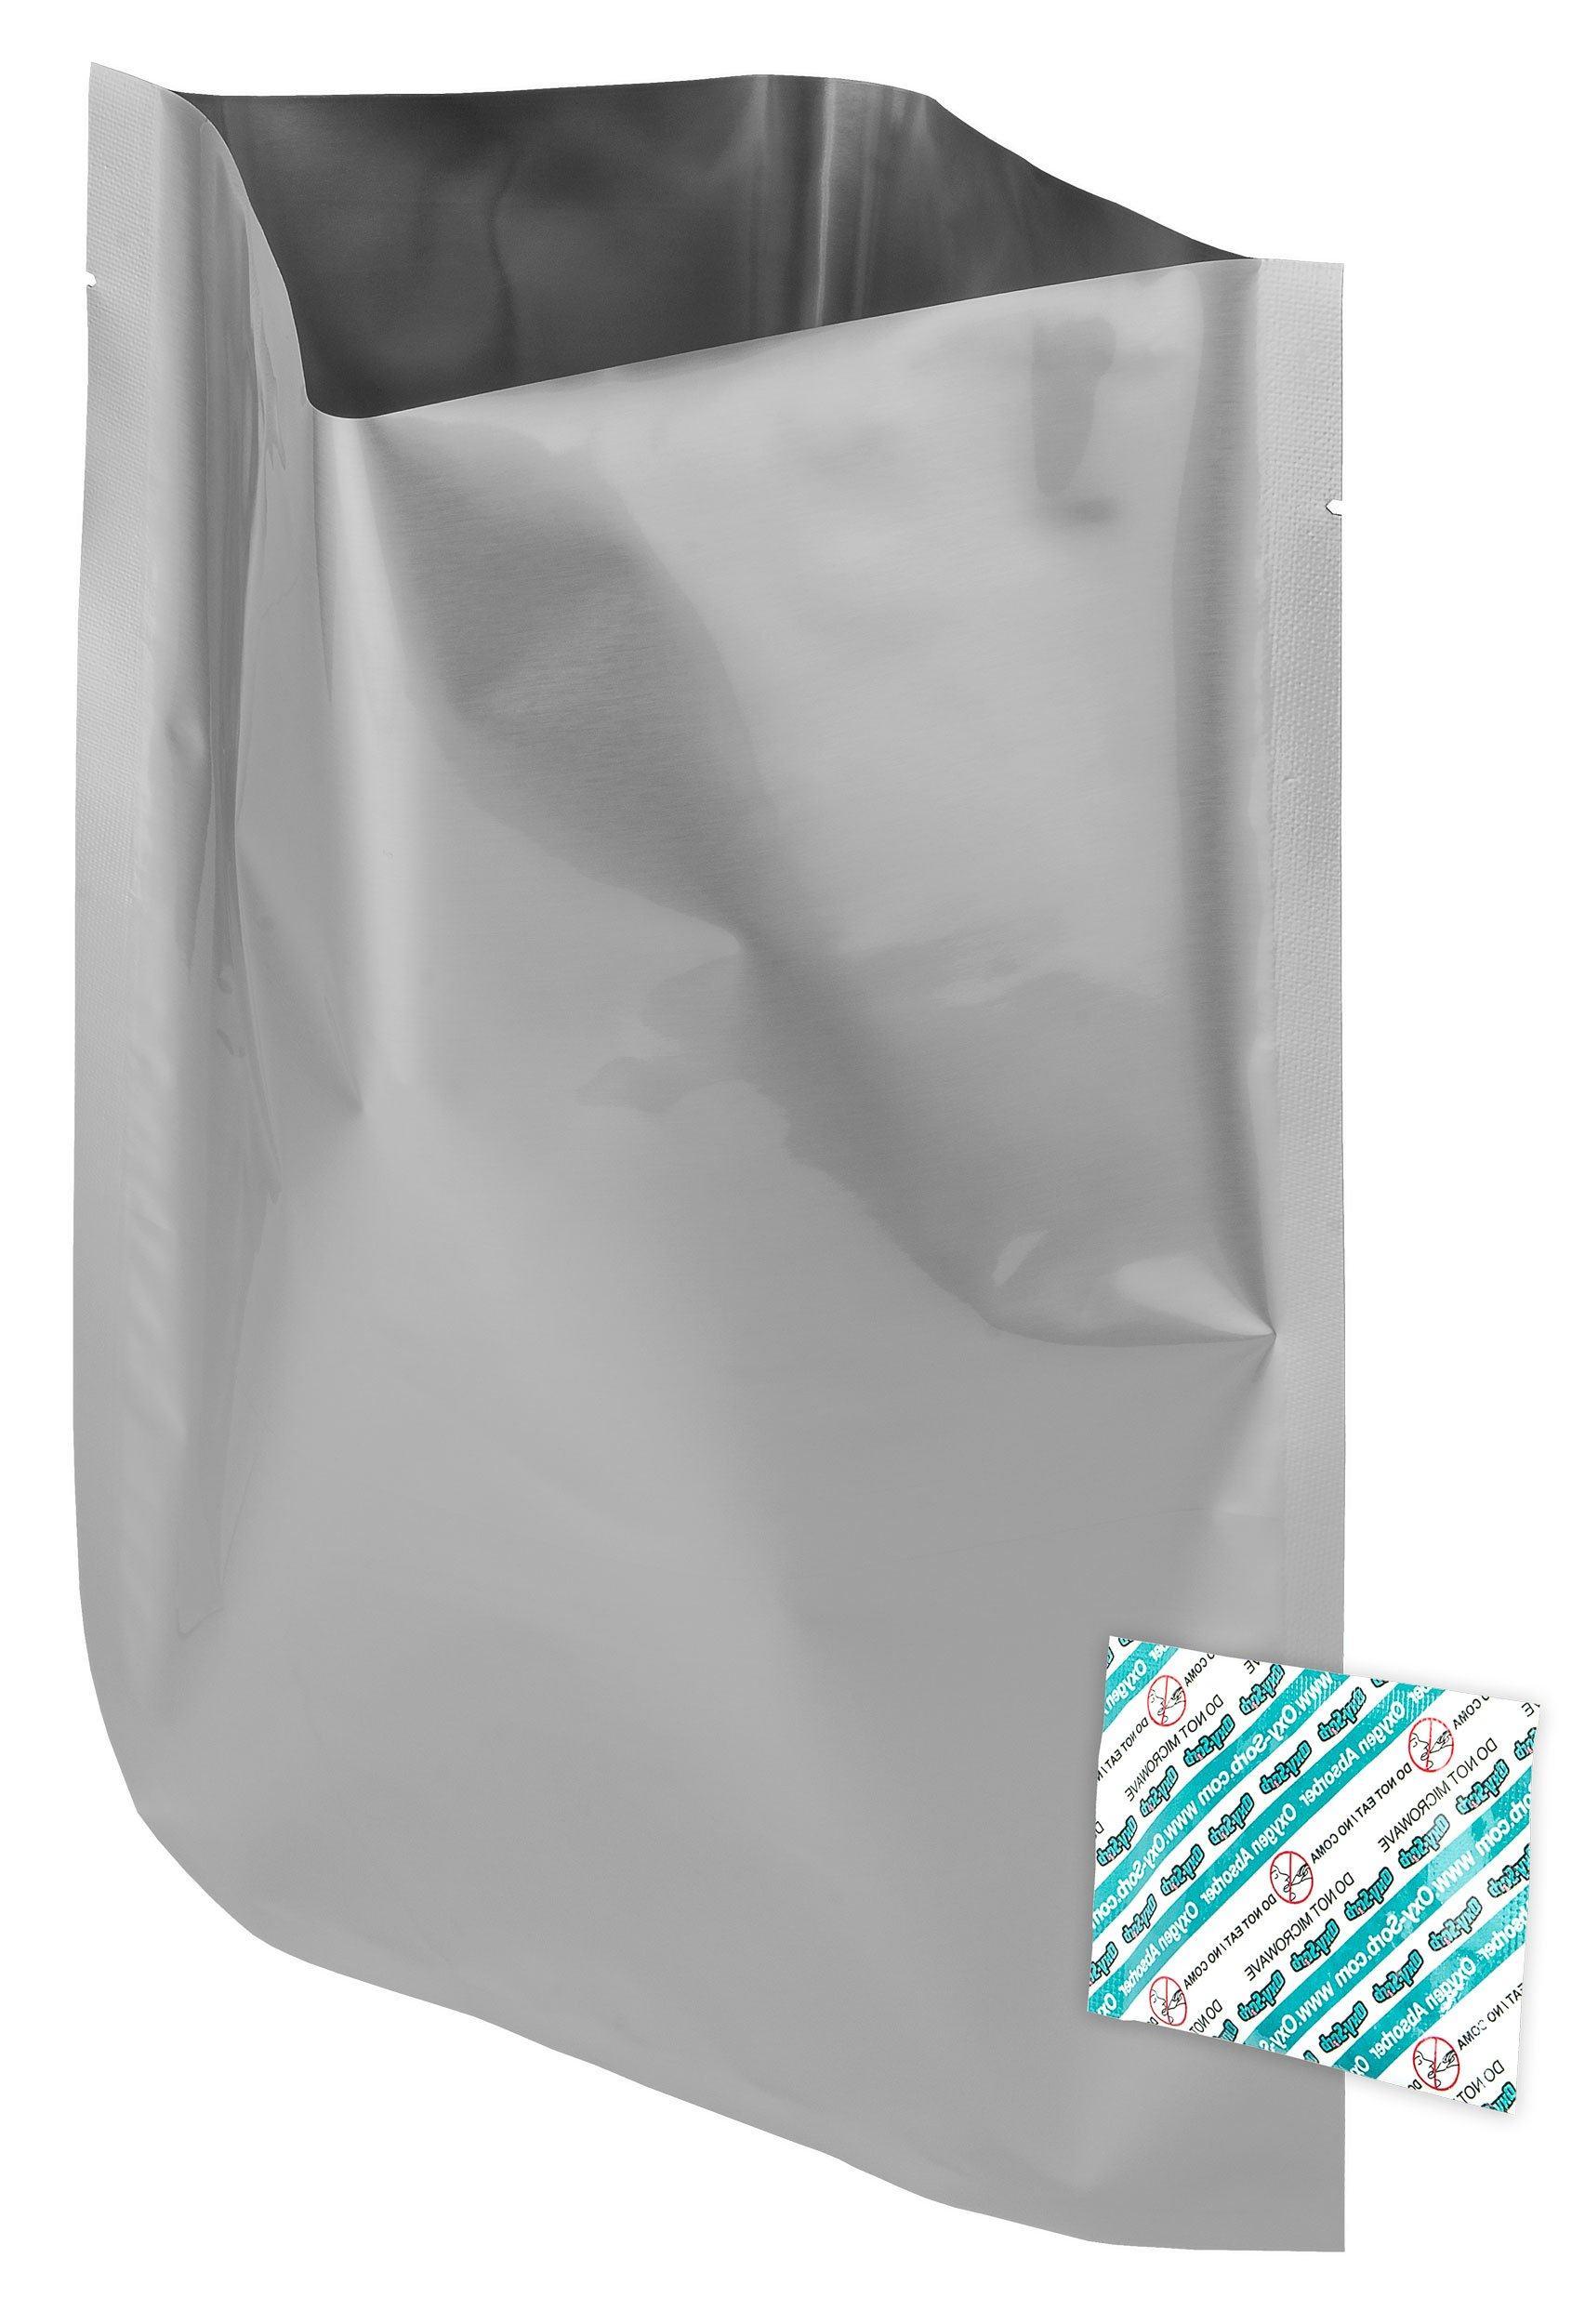 400 - 1 Gallon Mylar Bags & Oxygen Absorbers for Dried Food & Long Term Storage by Dry-Packs!